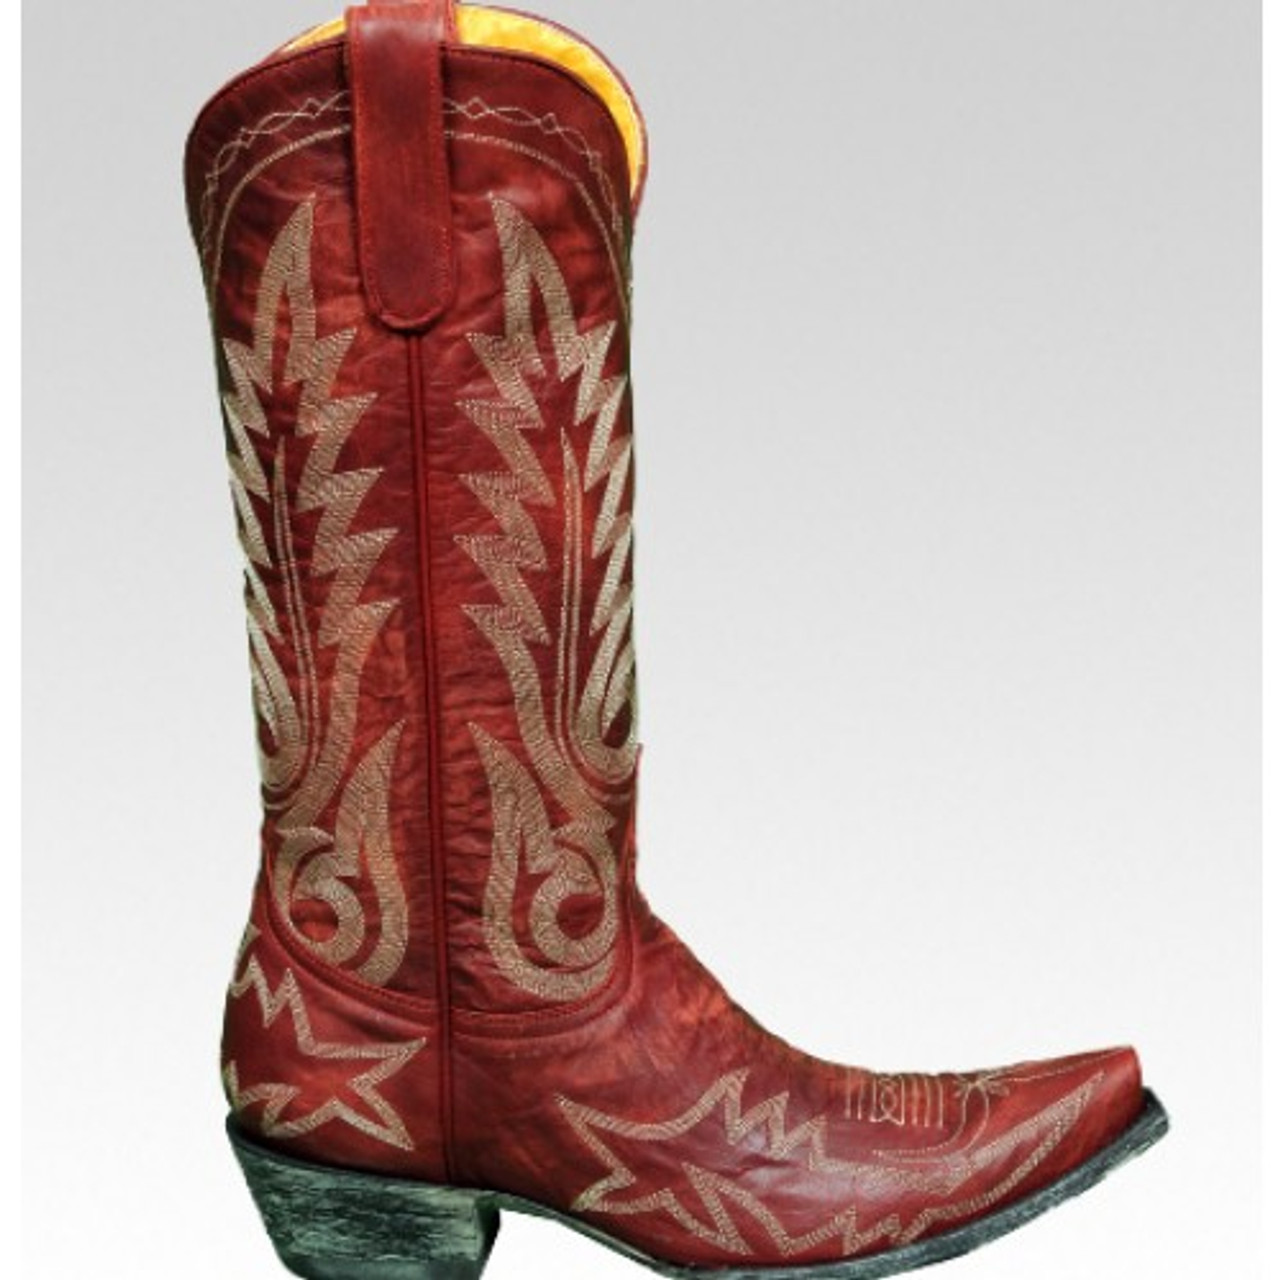 Old Gringo Women's Boots - Nevada - Red